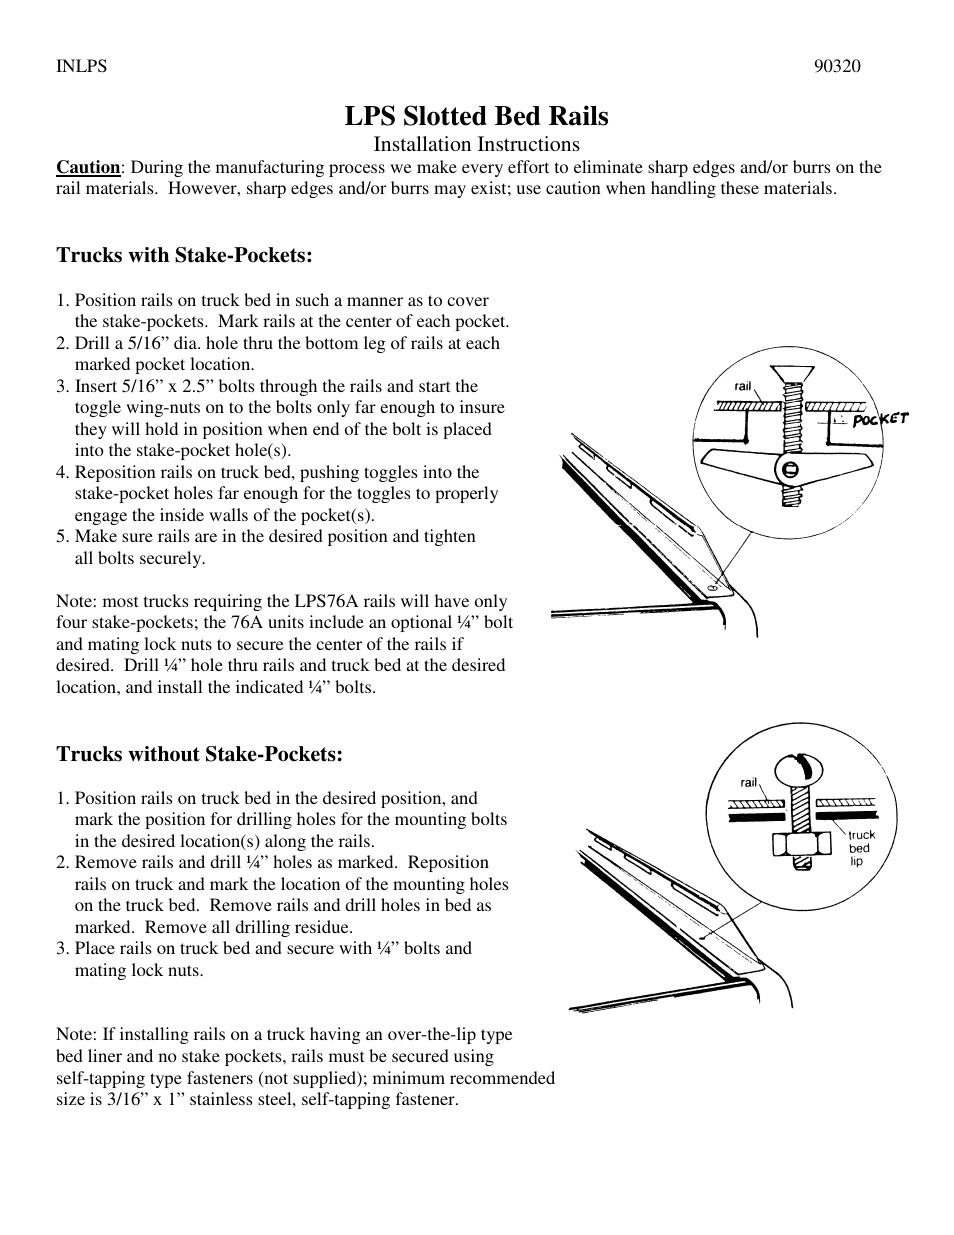 Perrycraft LPS Bed Rails User Manual | 1 page